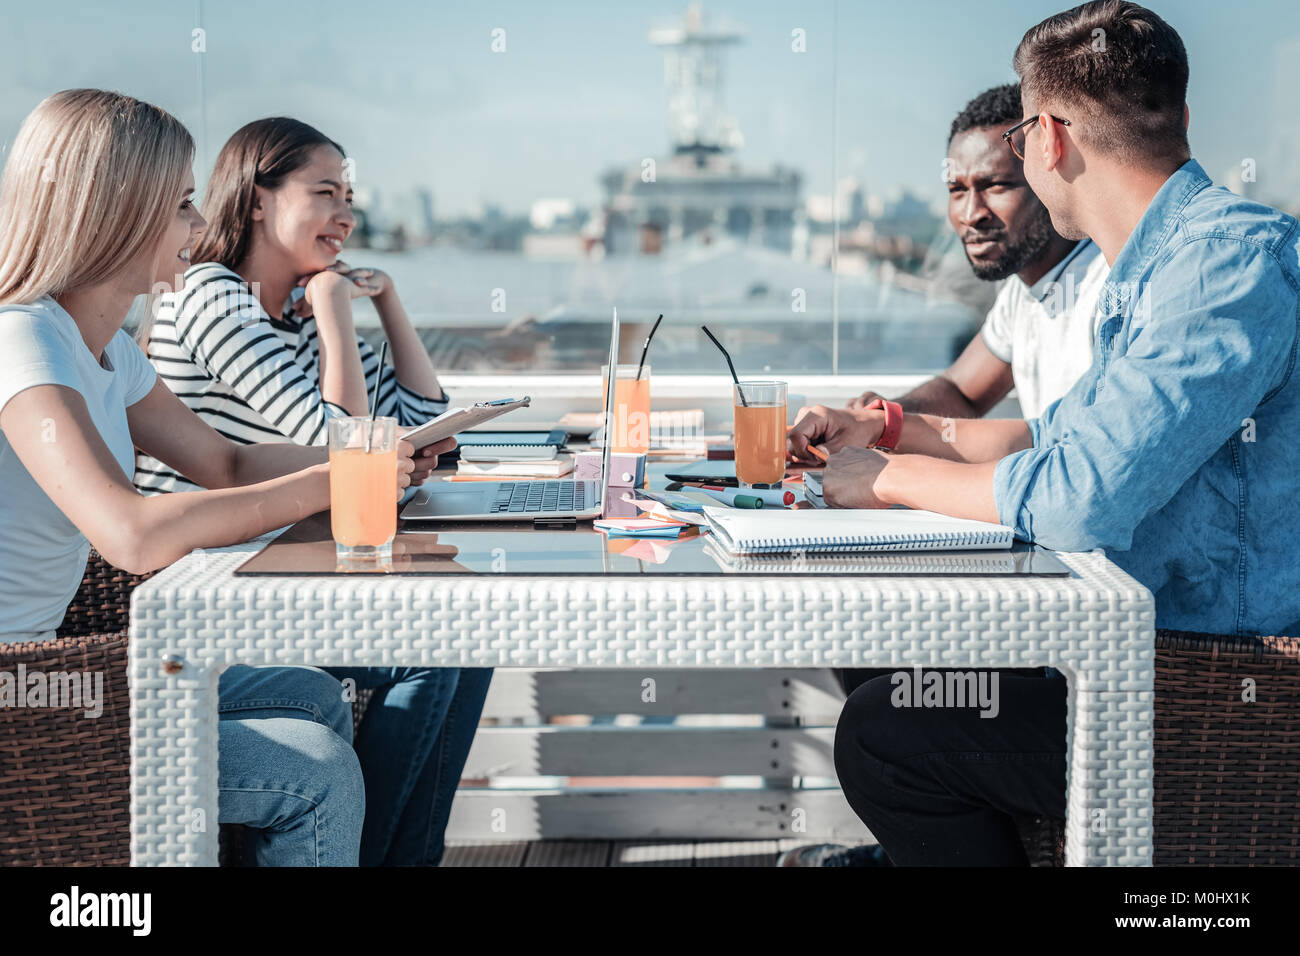 Group of young freelancers meeting in cafe for lunch - Stock Image